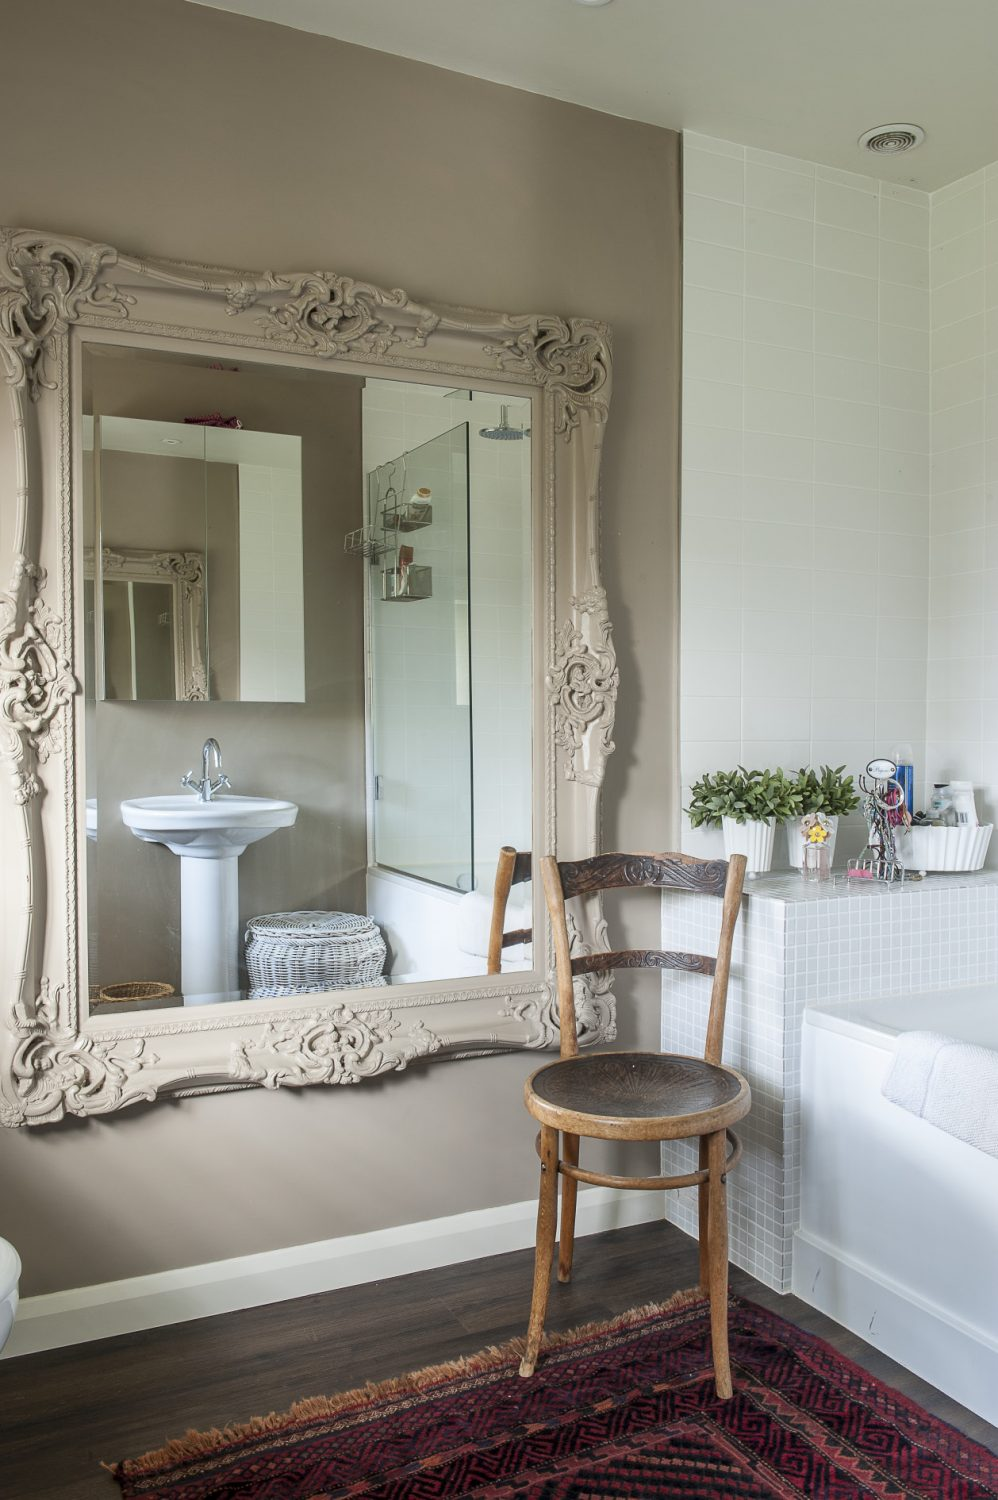 In the en suite, the frame of a large ornate mirror from Blooms has been very effectively painted the same F&B as the walls